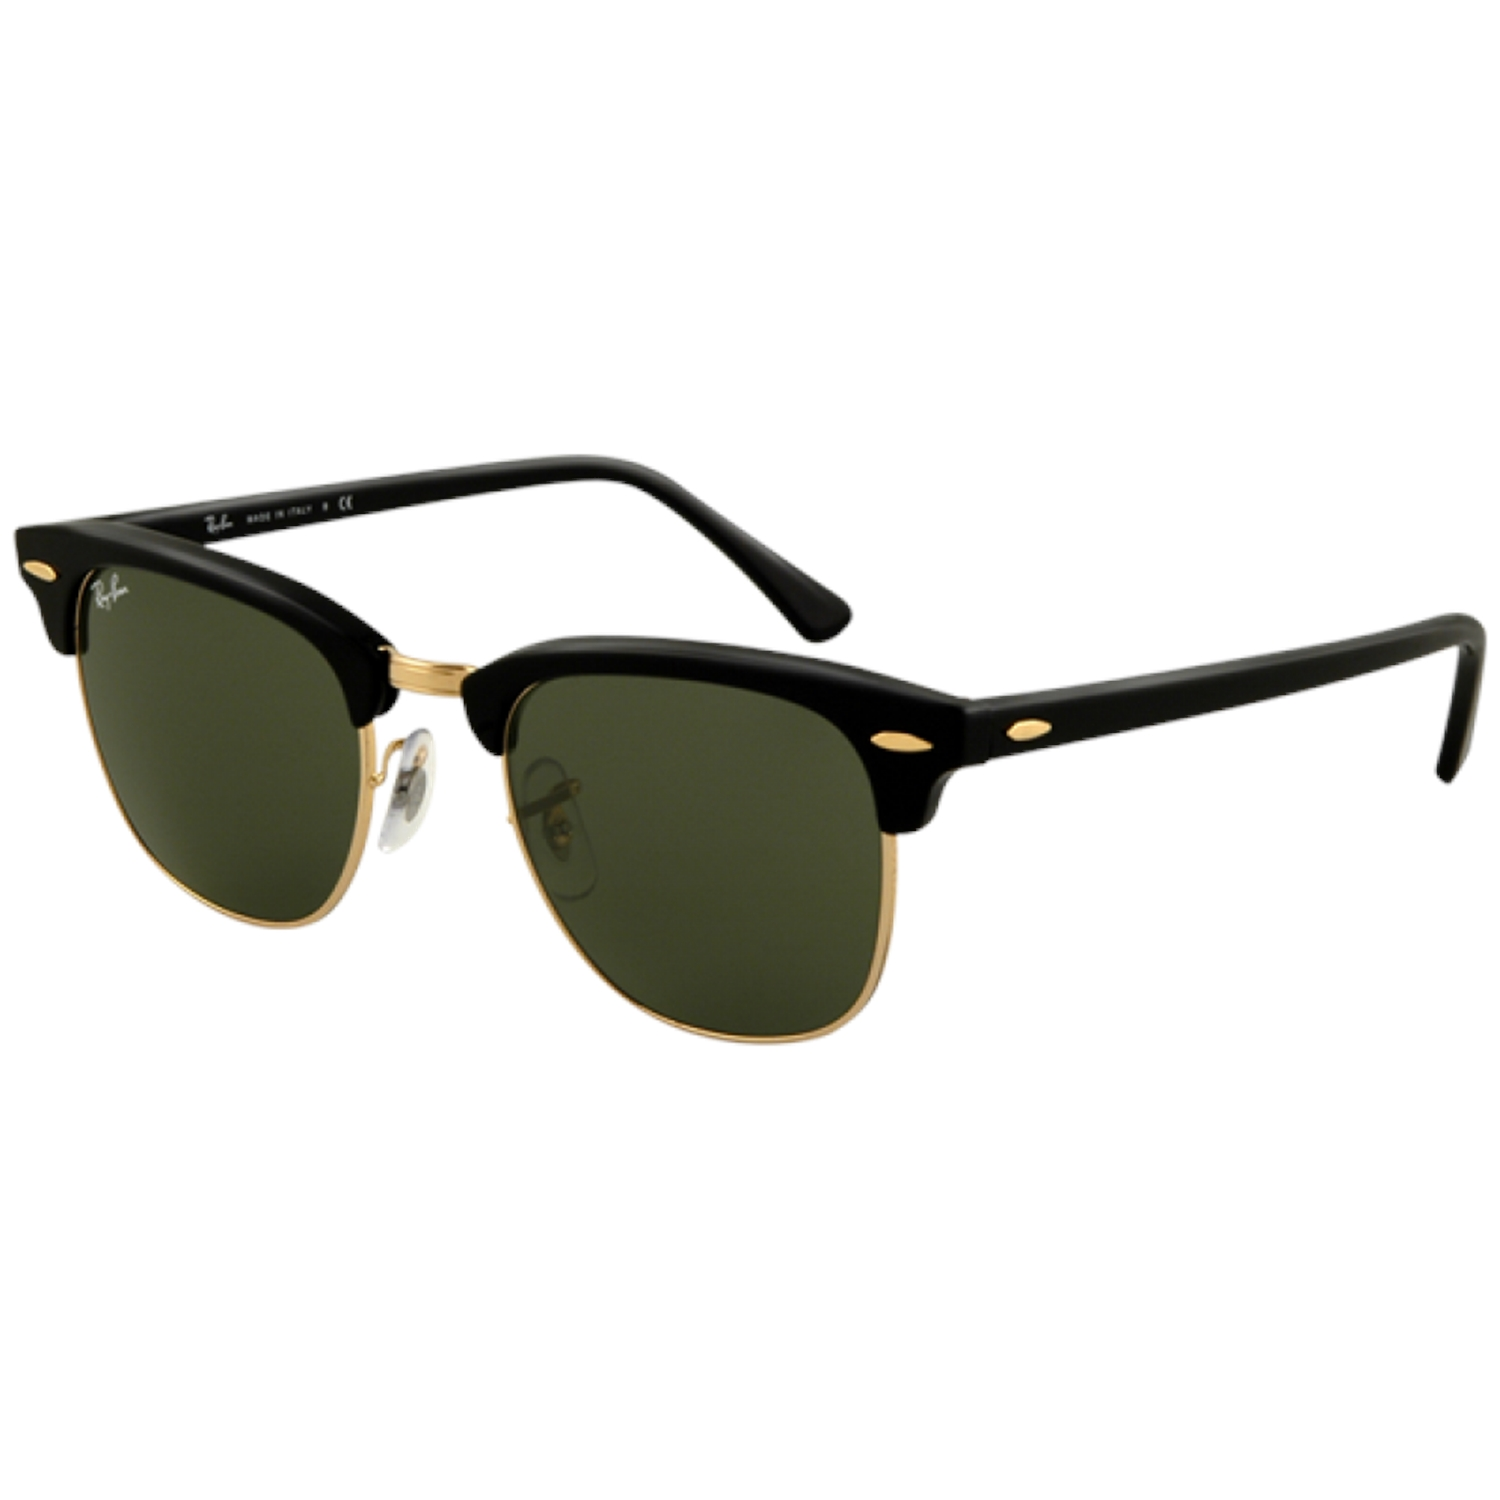 ray ban sunglasses frames walmart  ray ban men's clubmaster rb3016 w0365 51 black semi rimless sunglasses